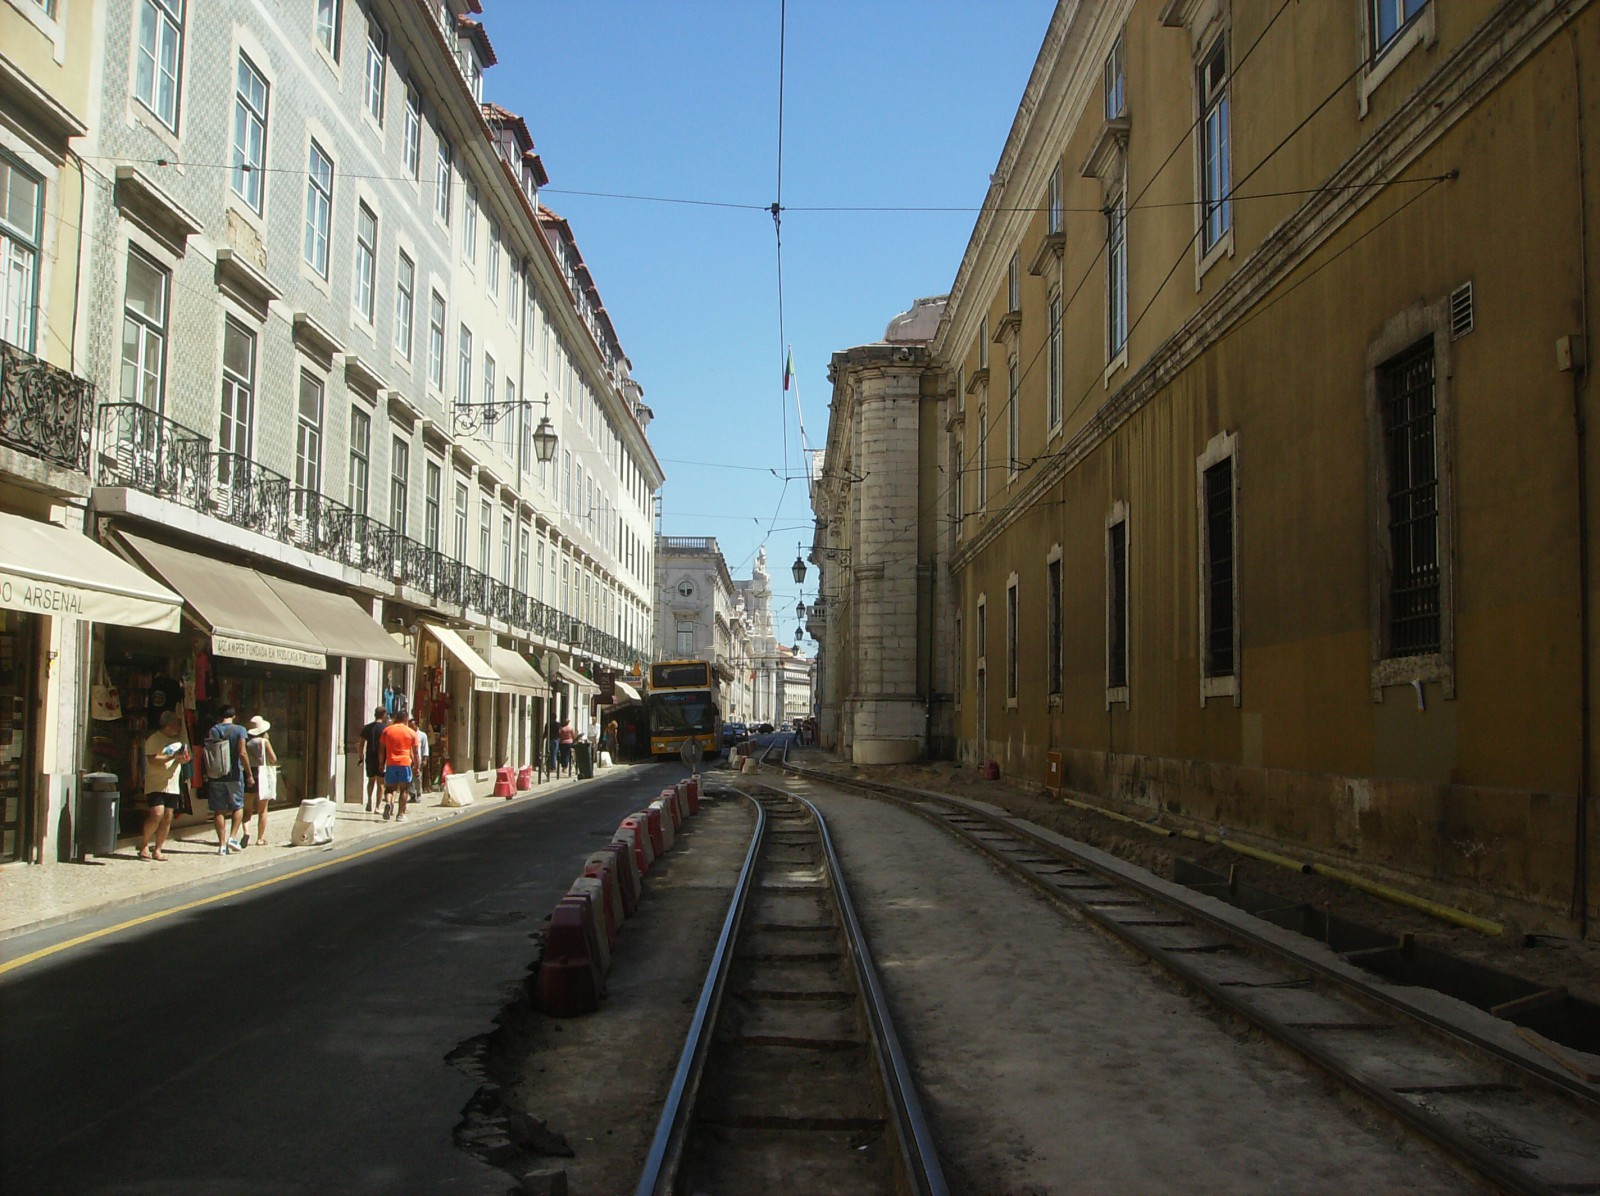 Rua do Arsenal 018.JPG